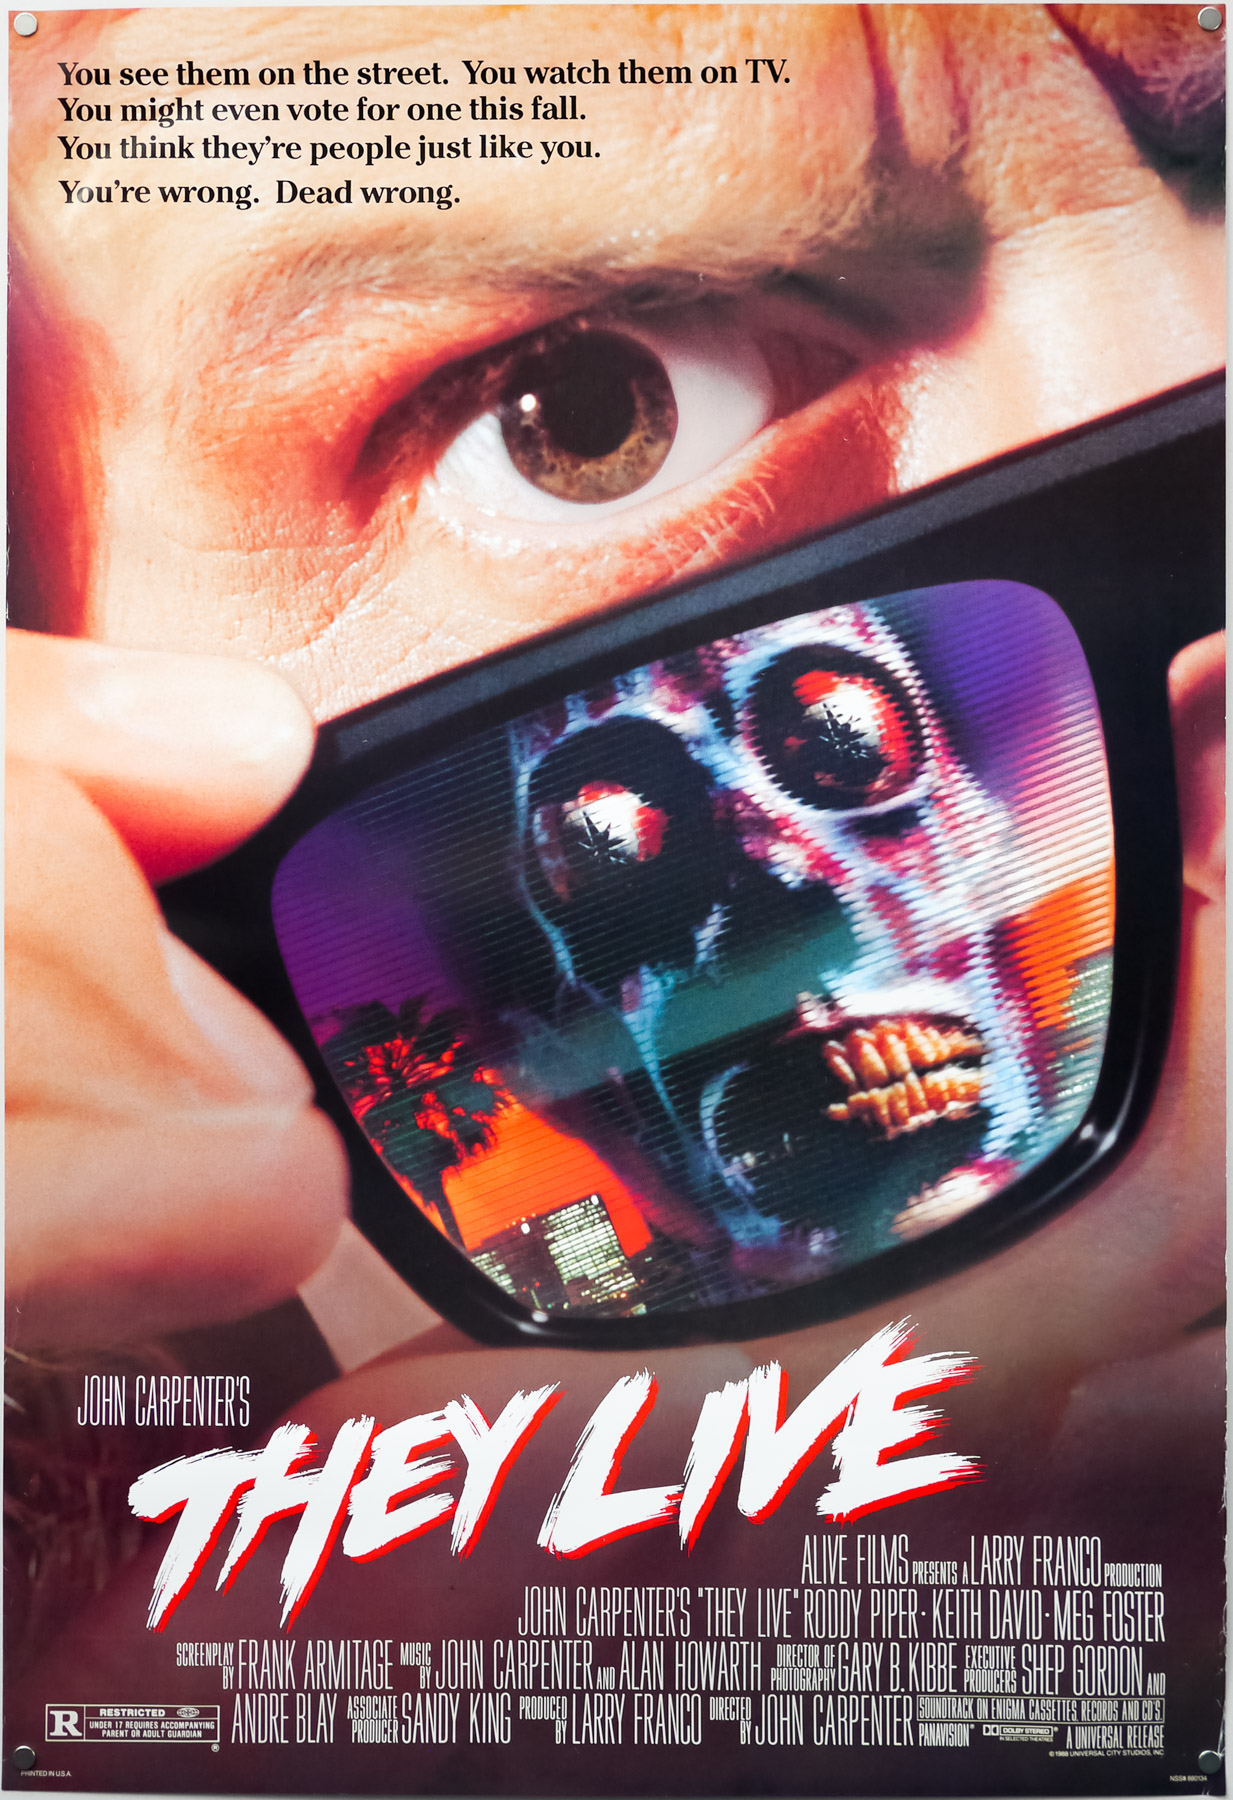 Poster for John Carpenter's cult-classic 'They Live'.